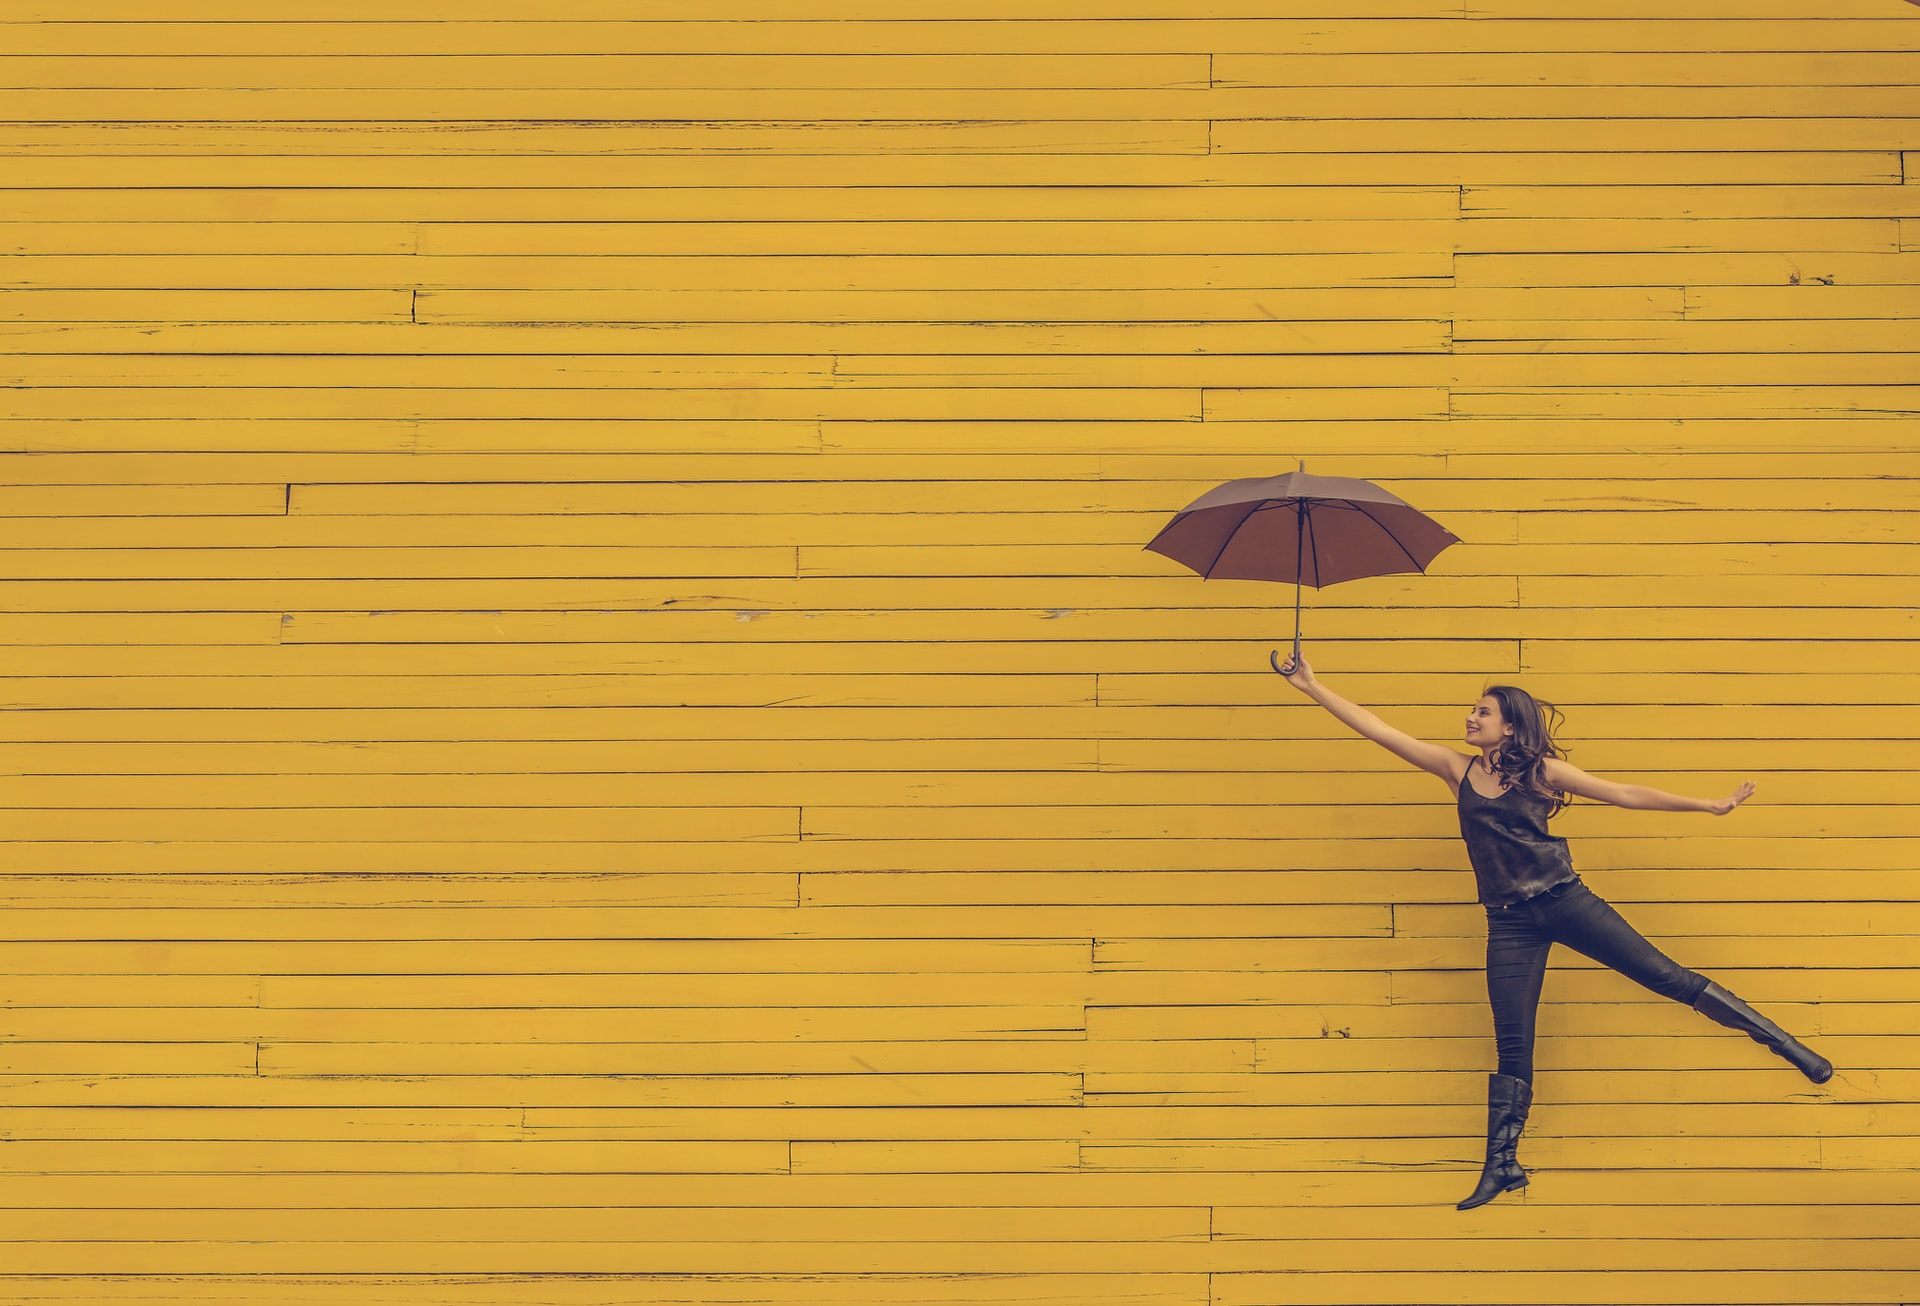 woman leaping against yellow background